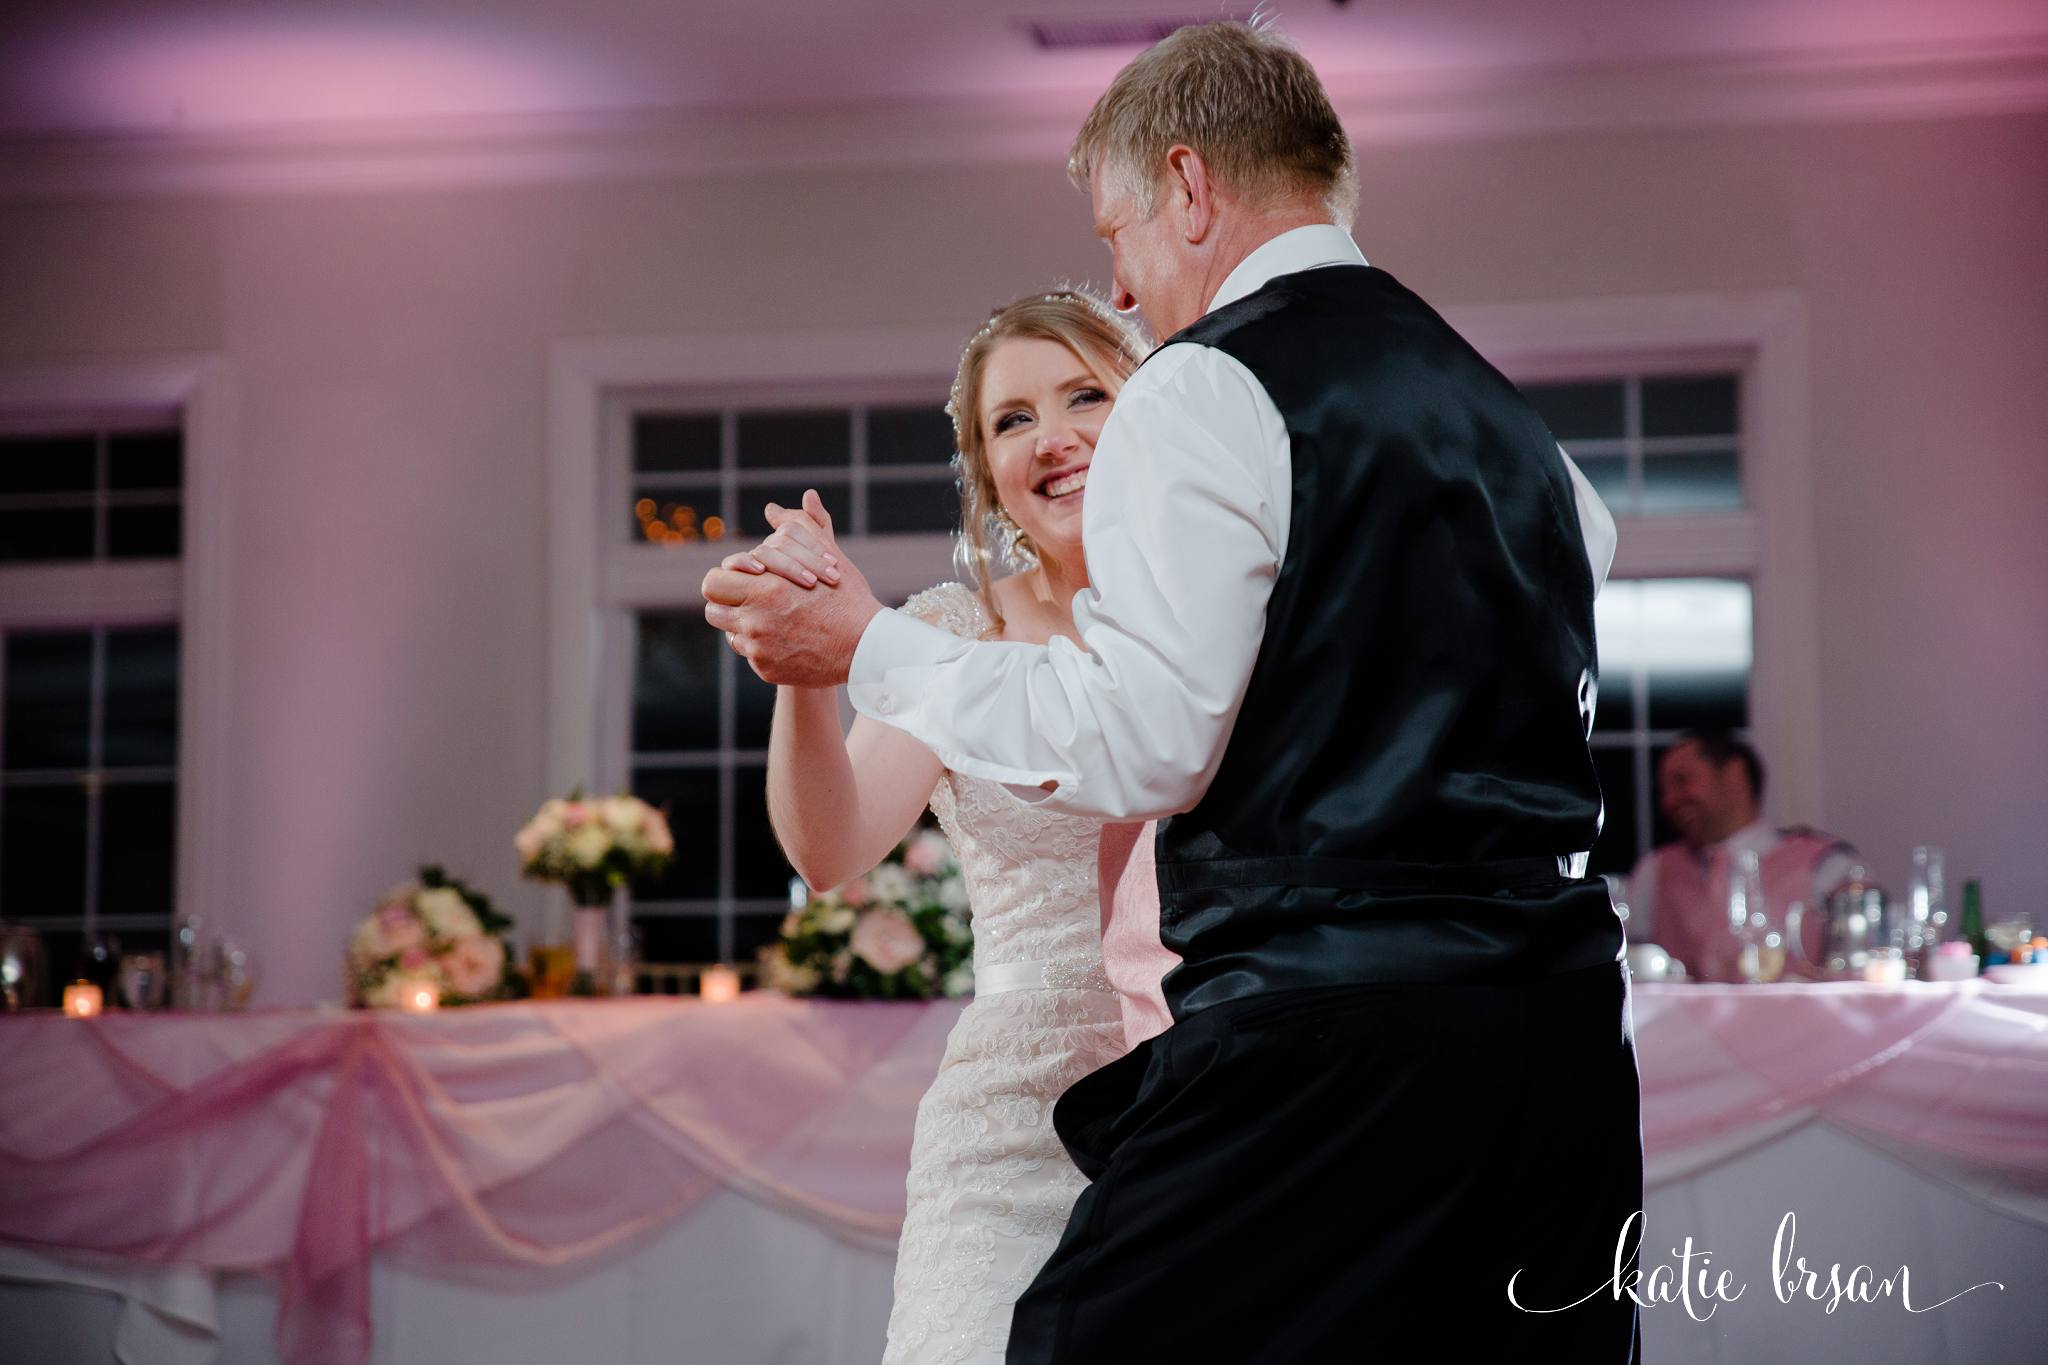 Mokena_Lemont_Wedding_Ruffled_Feathers_Wedding_1439.jpg